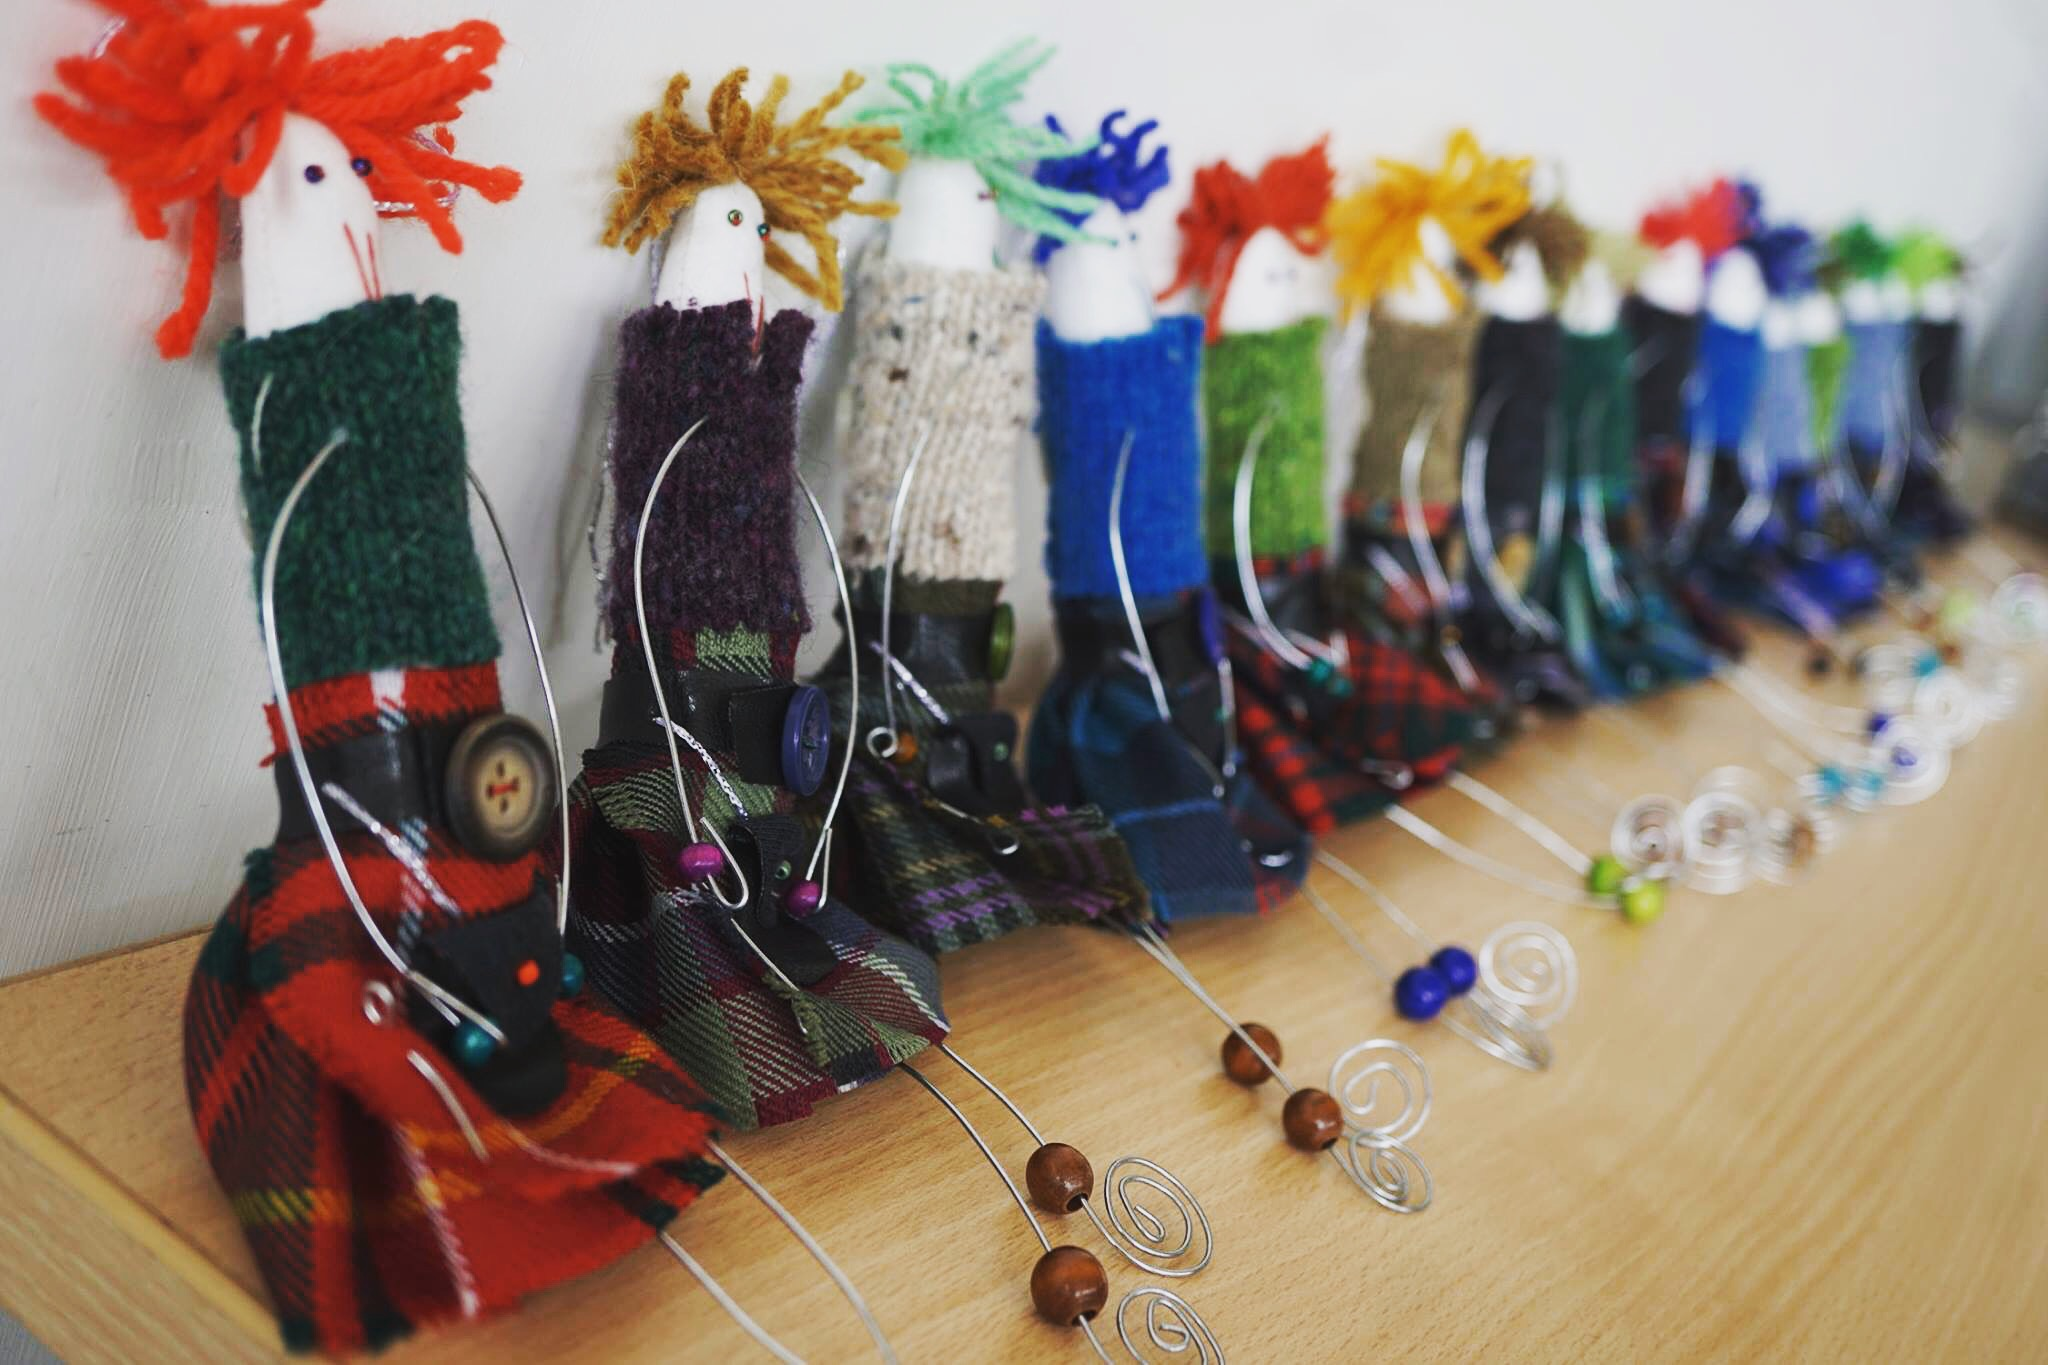 Cannie Men - The Cannie Men are decorative gifts. The Lads have little kilts, sporrans and wool jumpers . They each have their own Scottish name including Murdo, Hamish and Wild Willie and some mad hair. The Real Scotsmen have a few wee extras under their kilts!! again Commissions are welcome.Each wee man is unique and is lovingly made with locally sourced fabric, yarns, buttons and beads with metal arms and legs. They can sit or be hung up around the house. Tell them your wishes and perhaps they will come true.(Please note these are decorative and not toys)